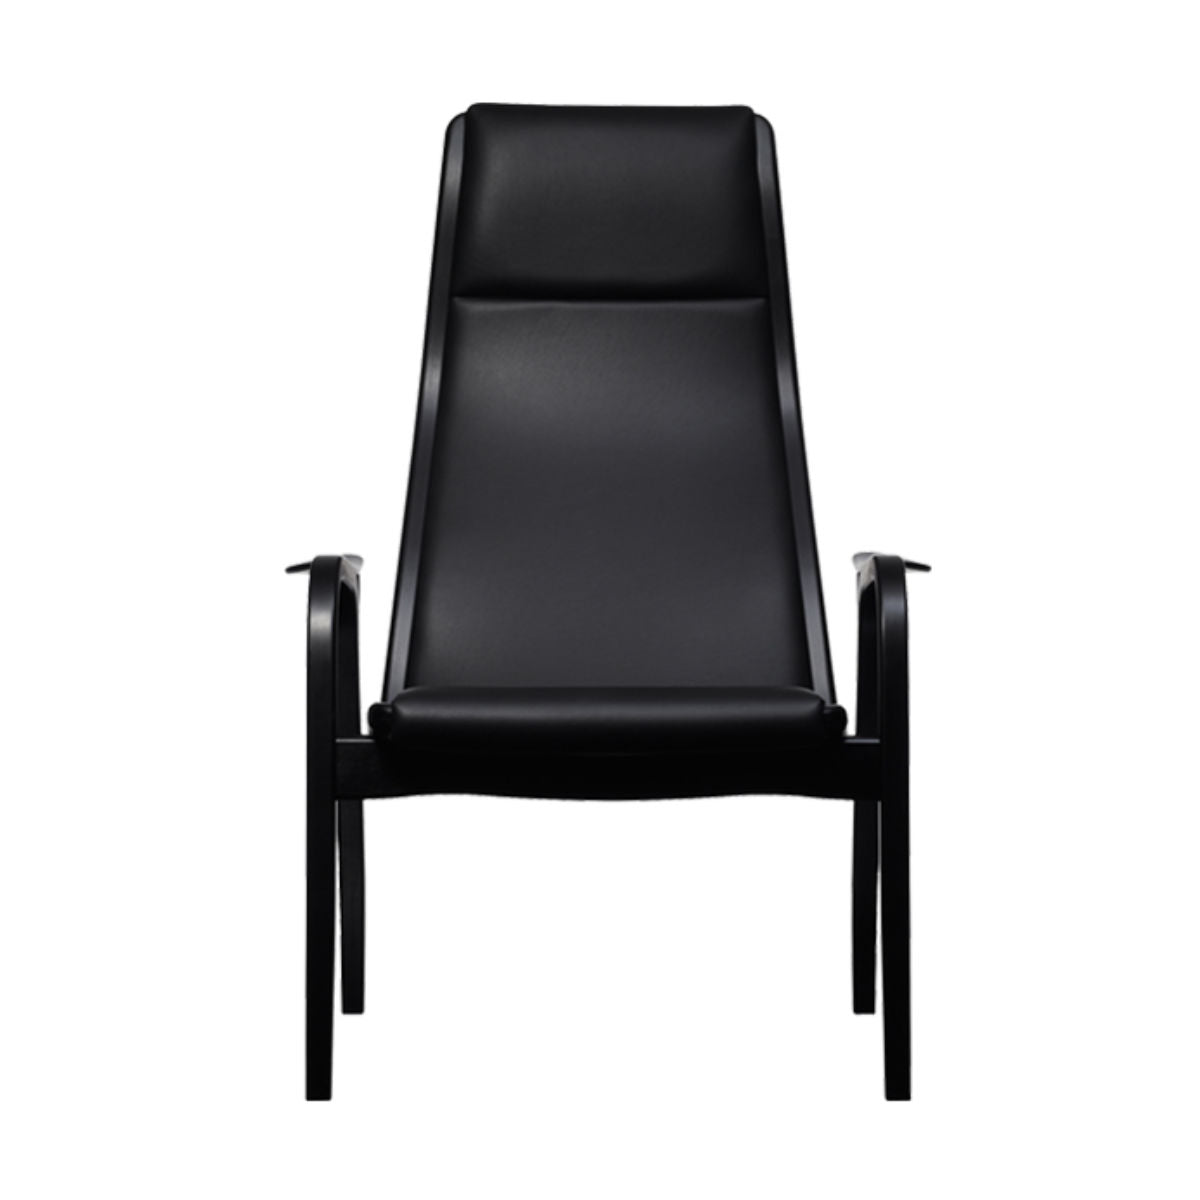 Swedese Lamino easy chair leather